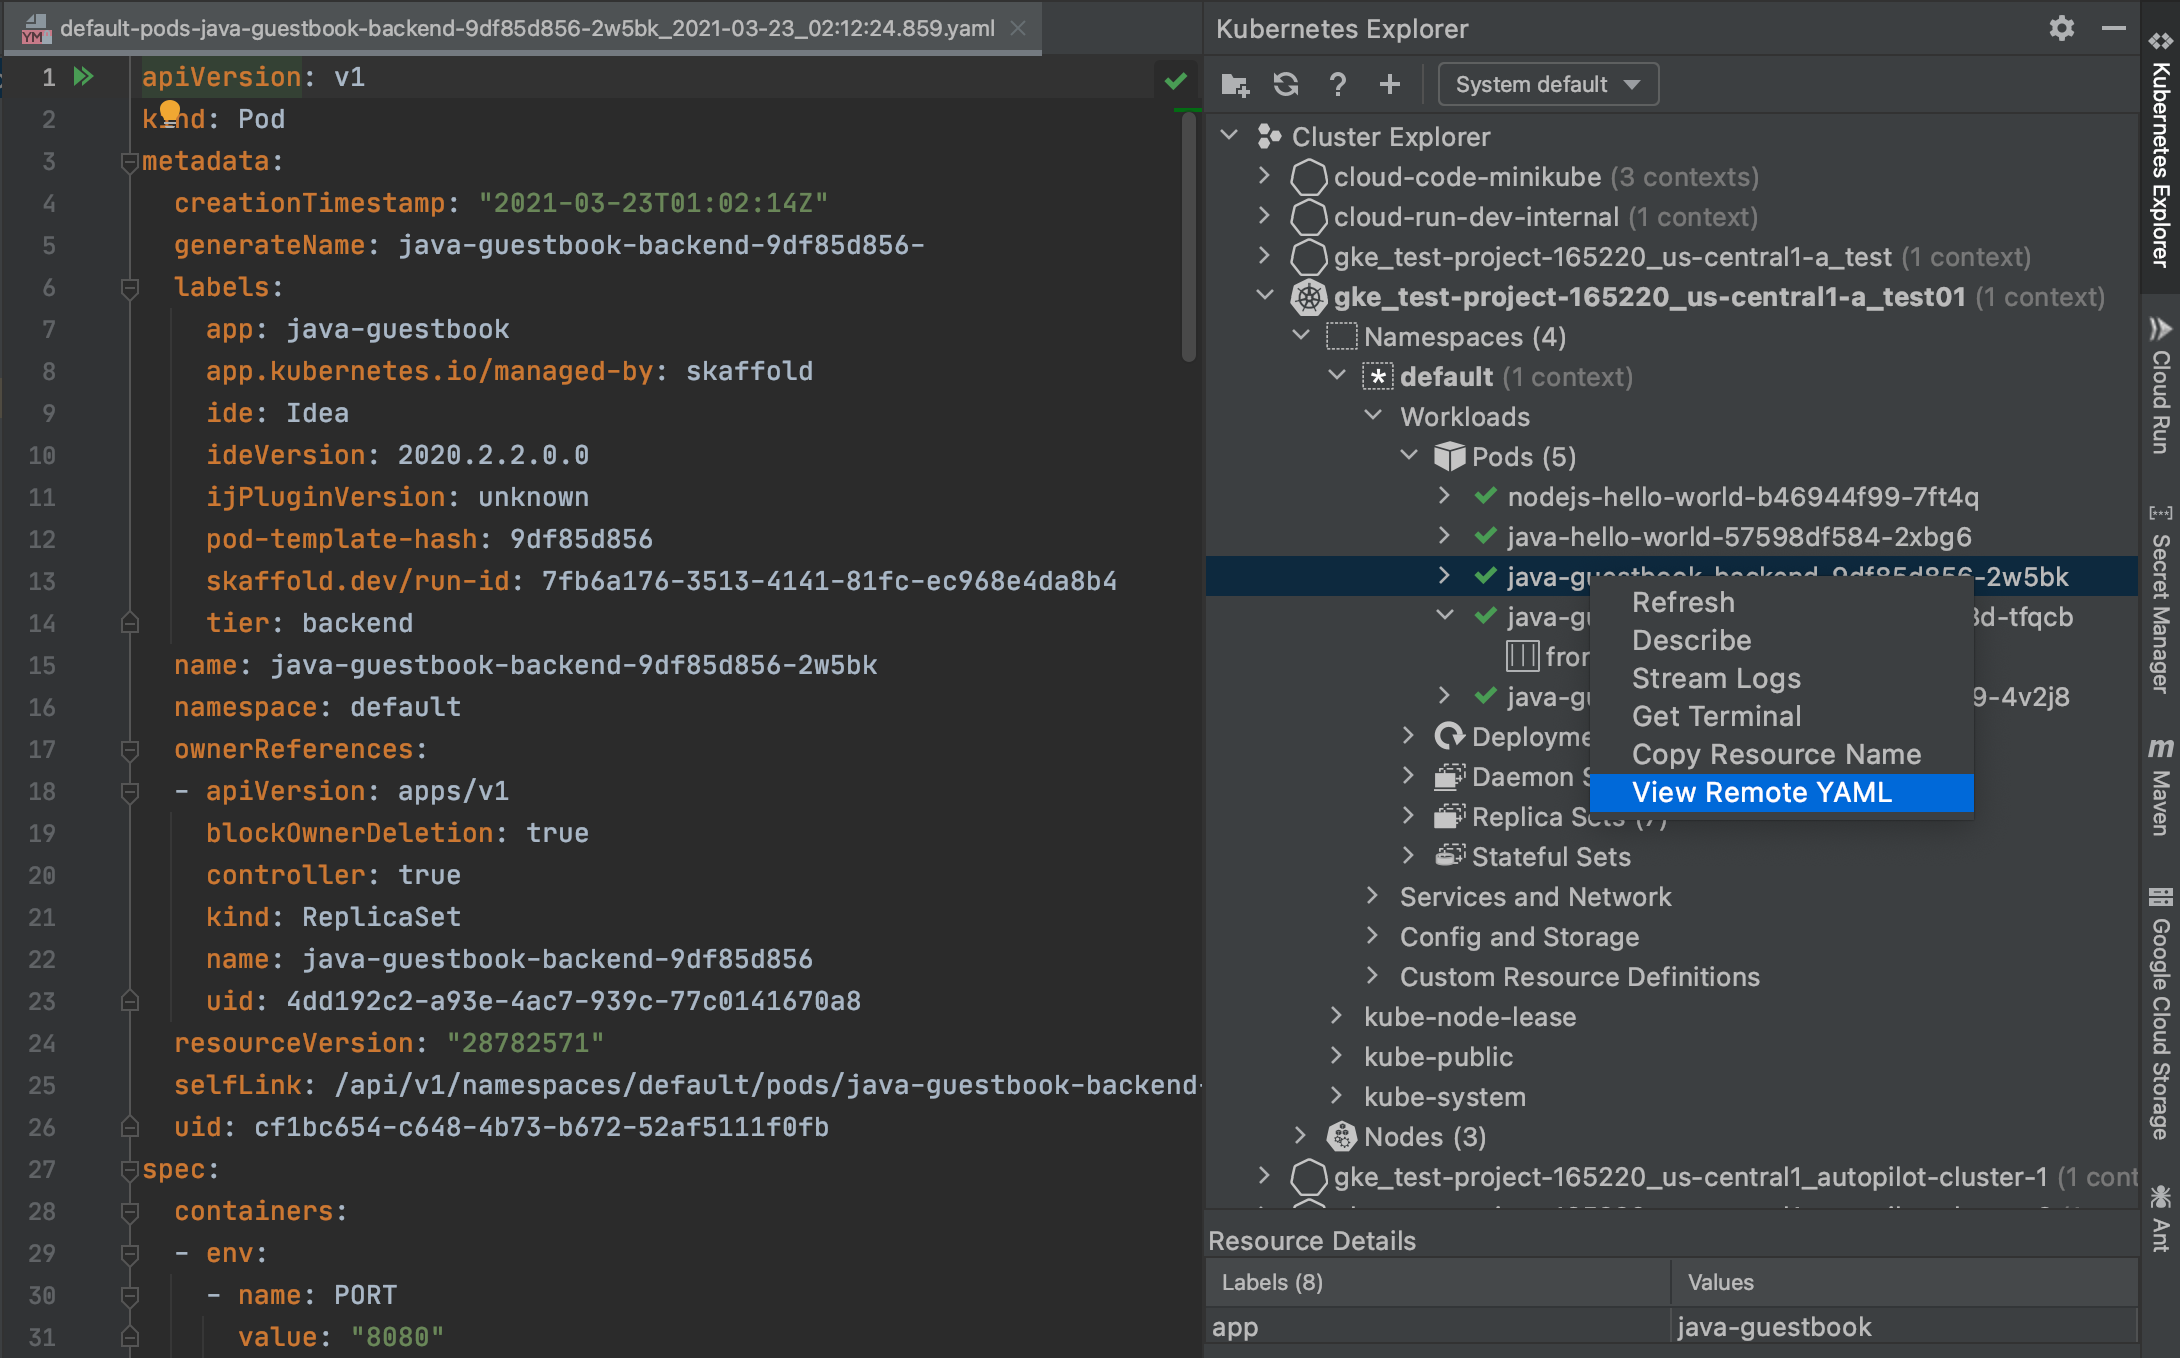 Viewing the YAML of a pod by right-clicking its label in the Kubernetes Explorer and choosing 'View Remote YAML'